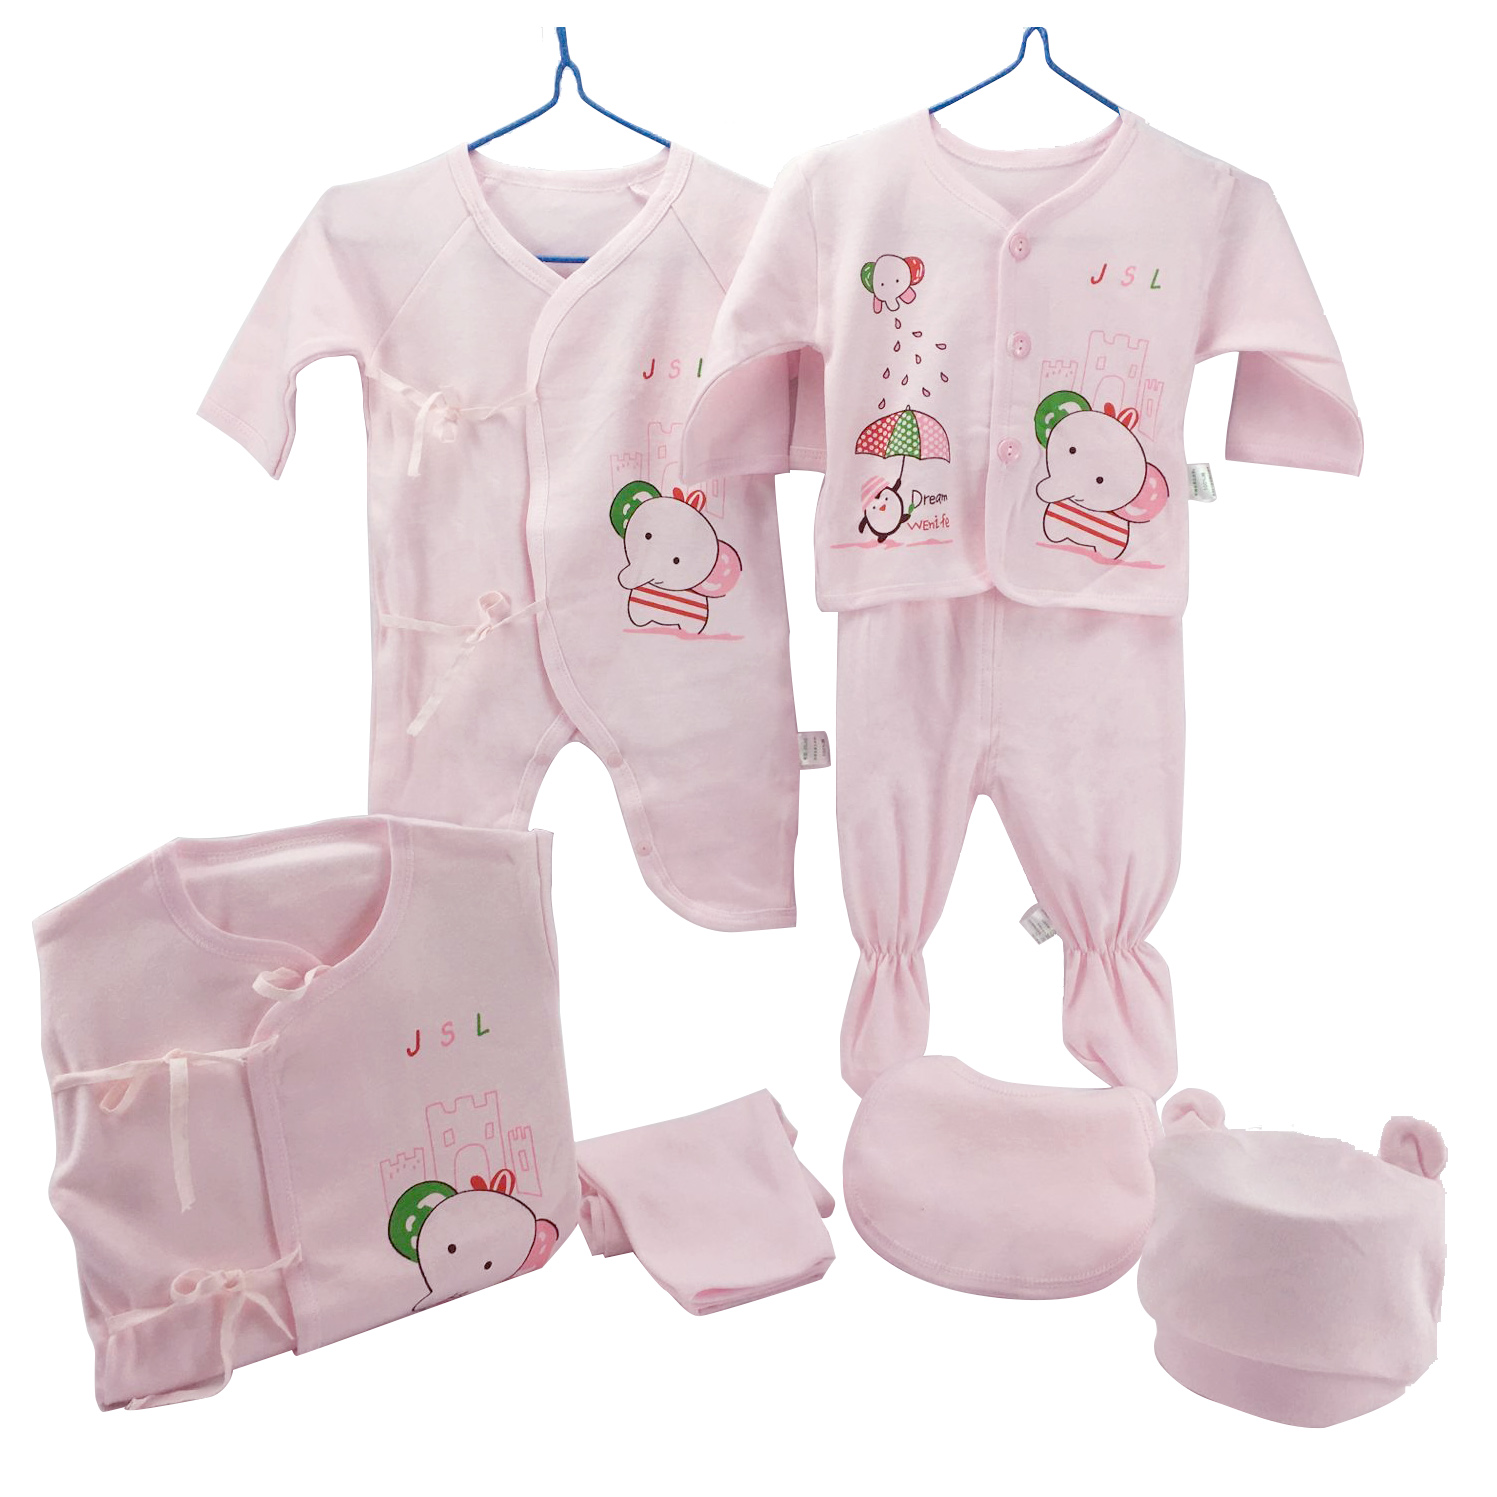 Nursery Time Girls 3pcs Long Sleeve Baby Body Vest 00-24 Months Pink Cotton New